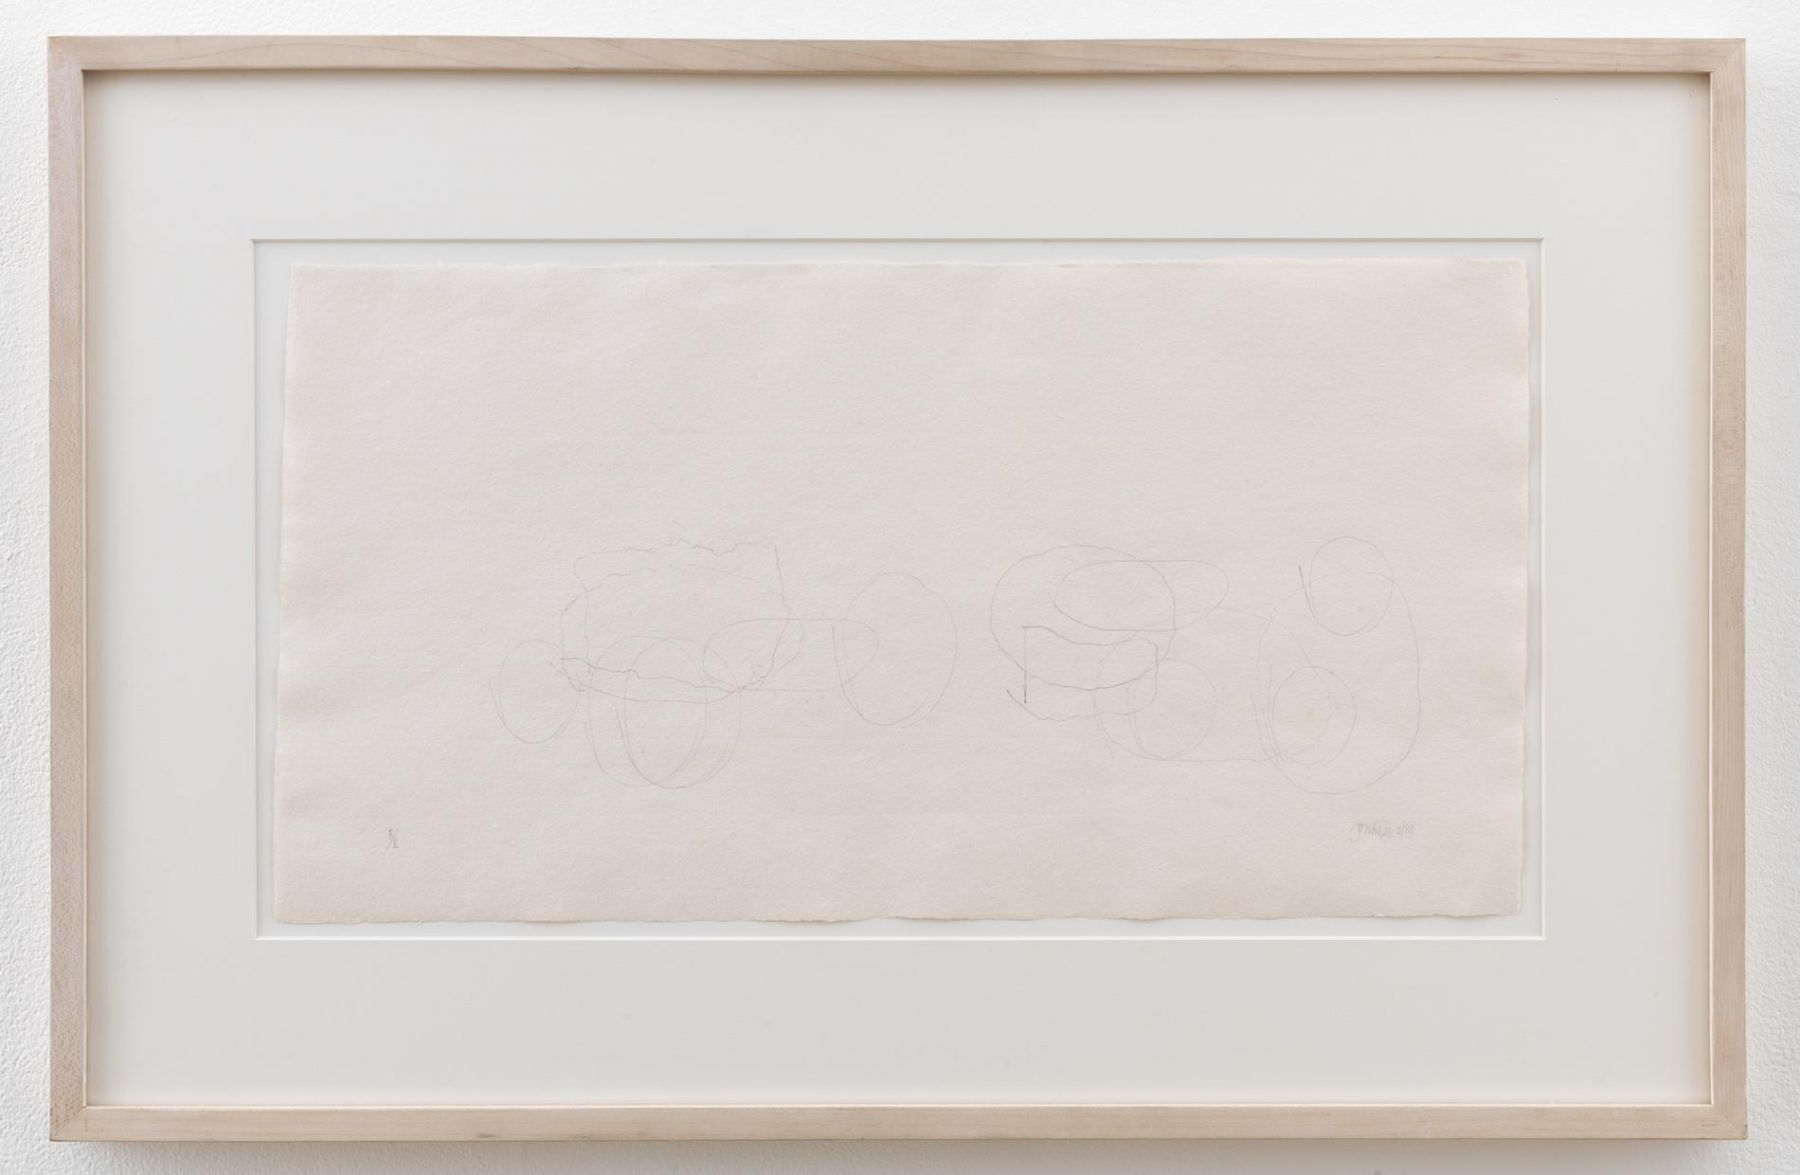 , JOHN CAGE Where R = Ryoanji R/1 – 2/88, 1988 Graphite on handmade paper 16 7/8 x 26 x 1 1/4 in. (42.9 x 66 x 3.2 cm)